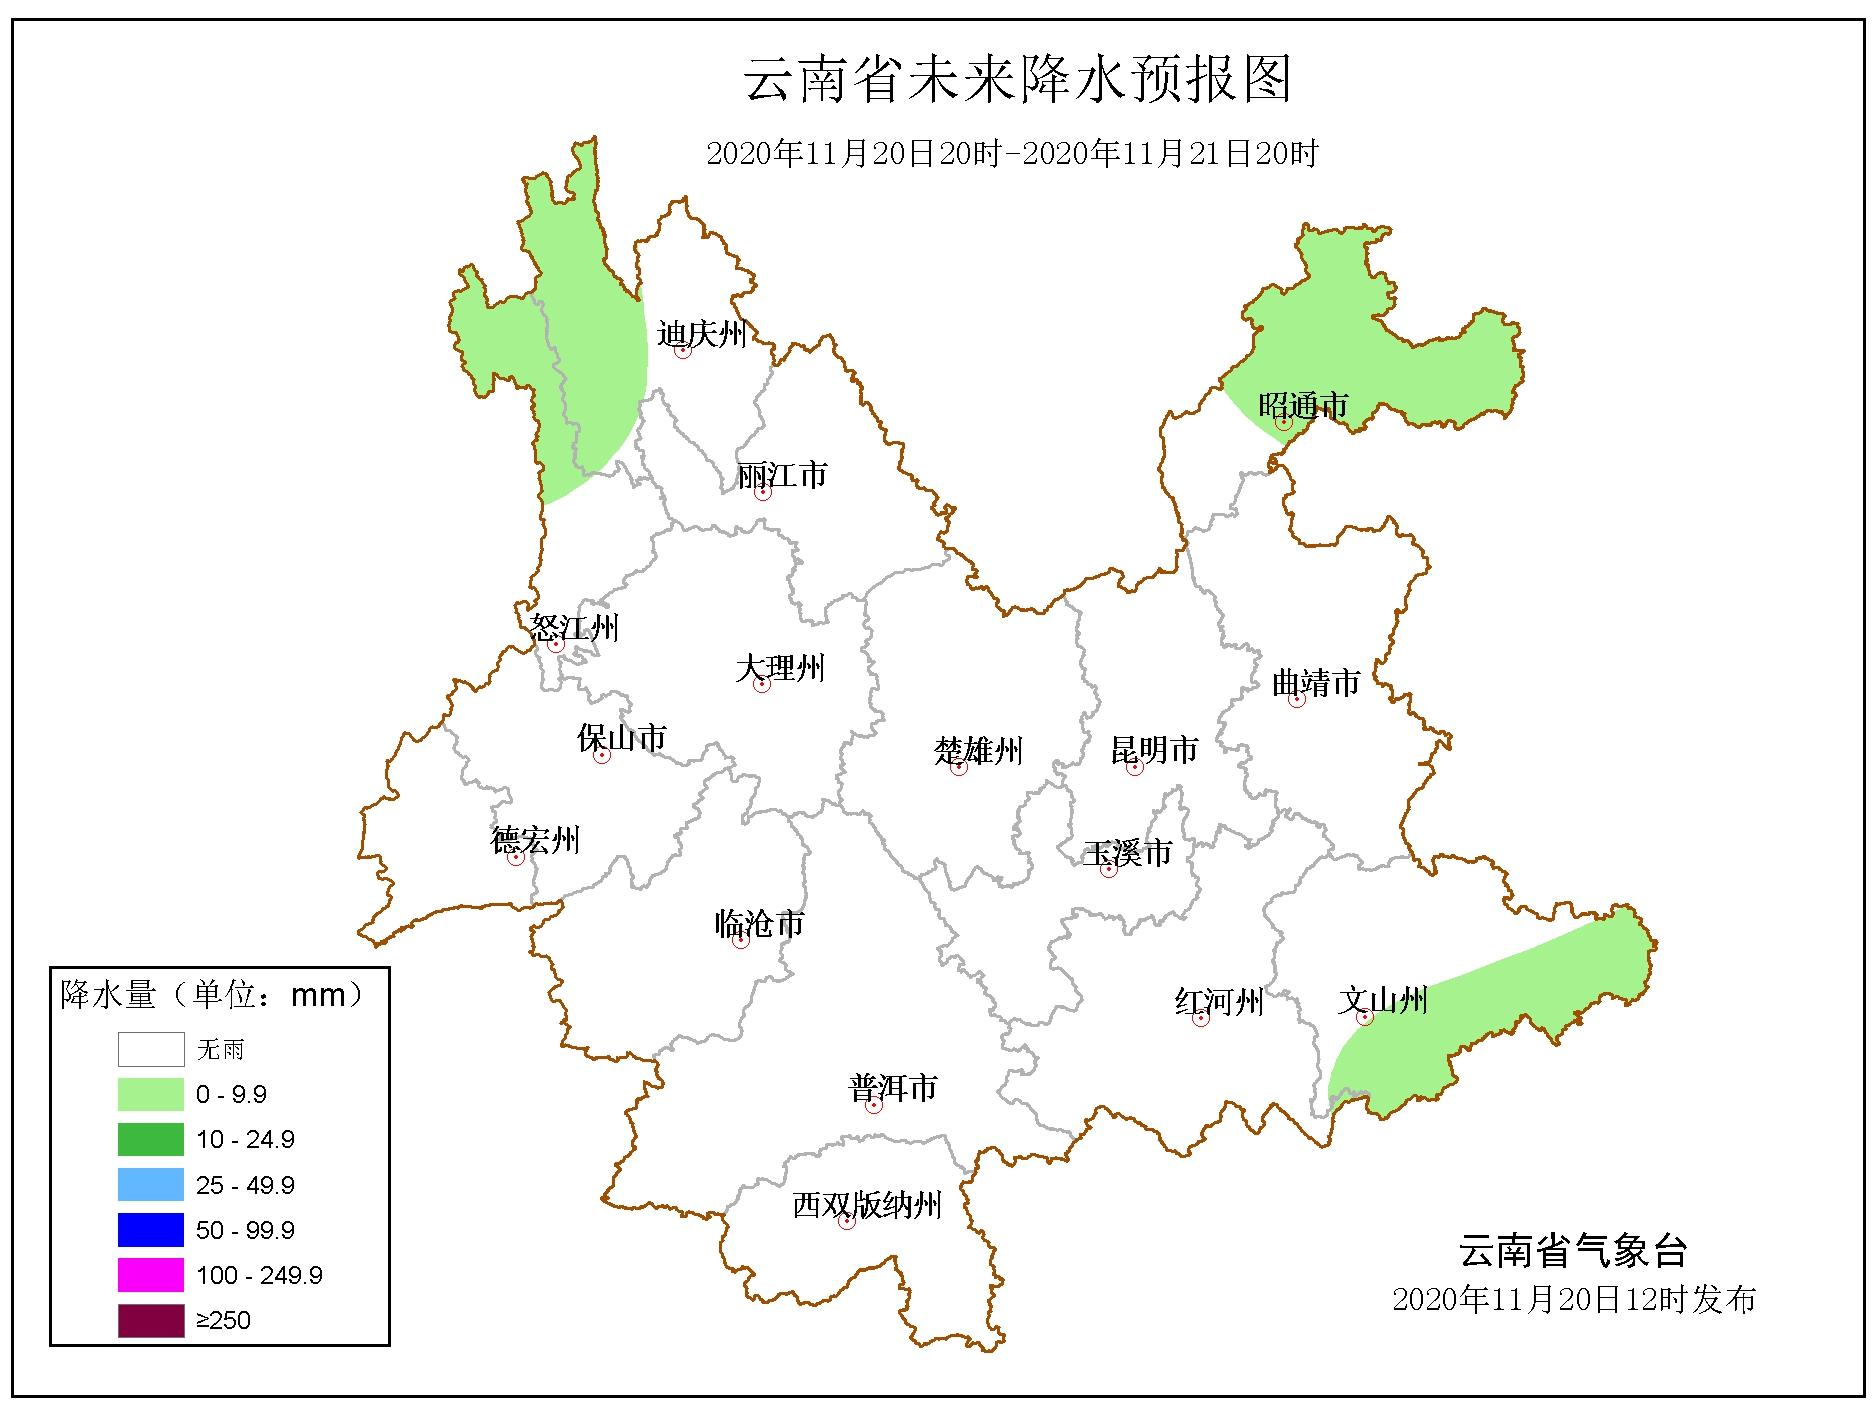 http://i.weather.com.cn/images/yunnan/tqyw/2020/11/20/1605865488032077246.jpg